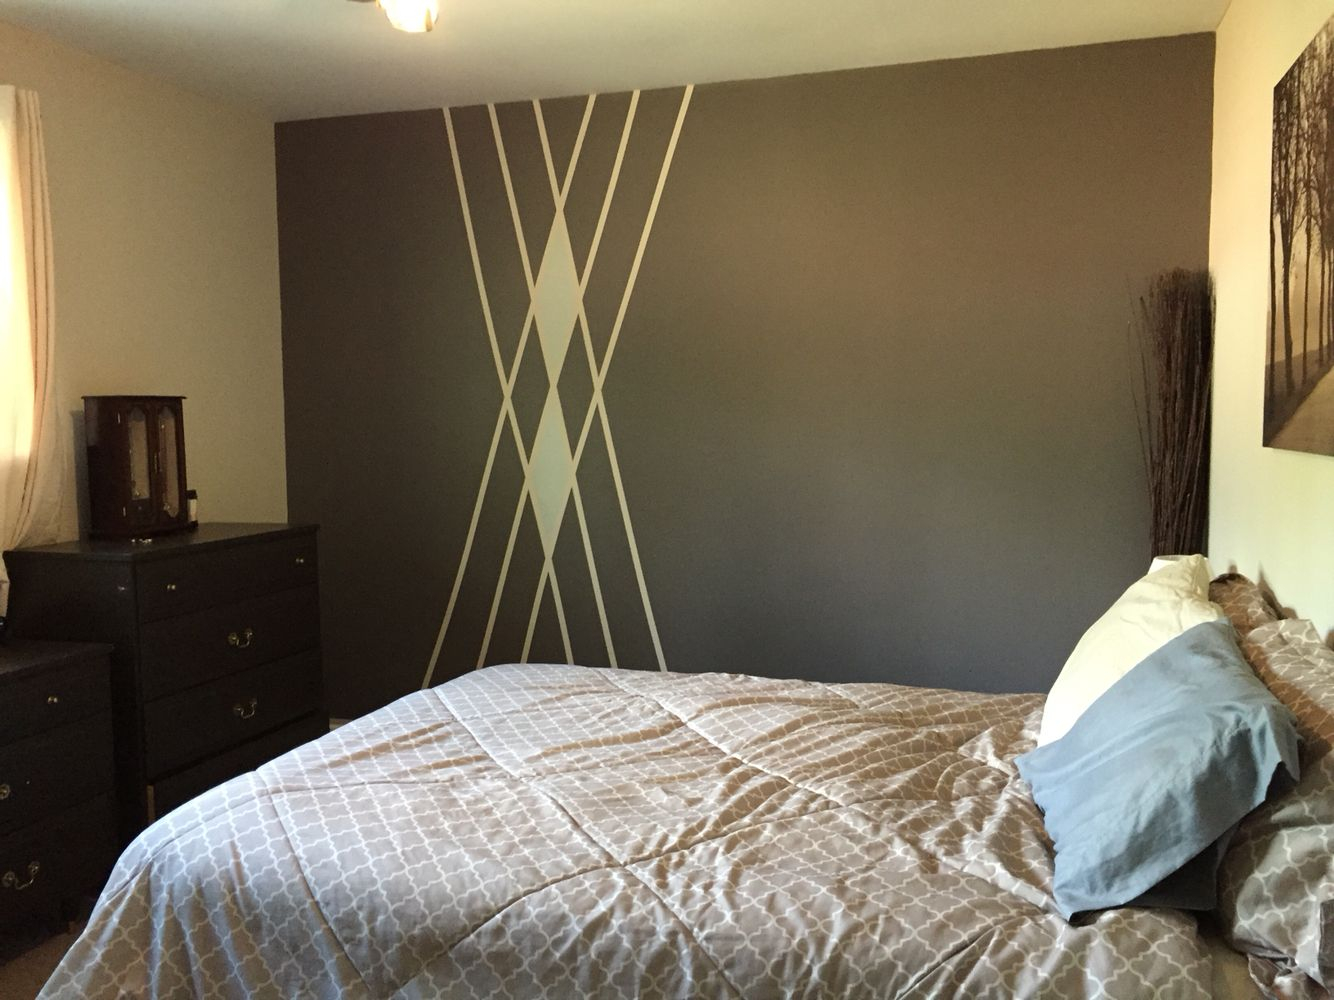 Painted Wall With Pattern Design Triangles Or Diamonds Shapes Was